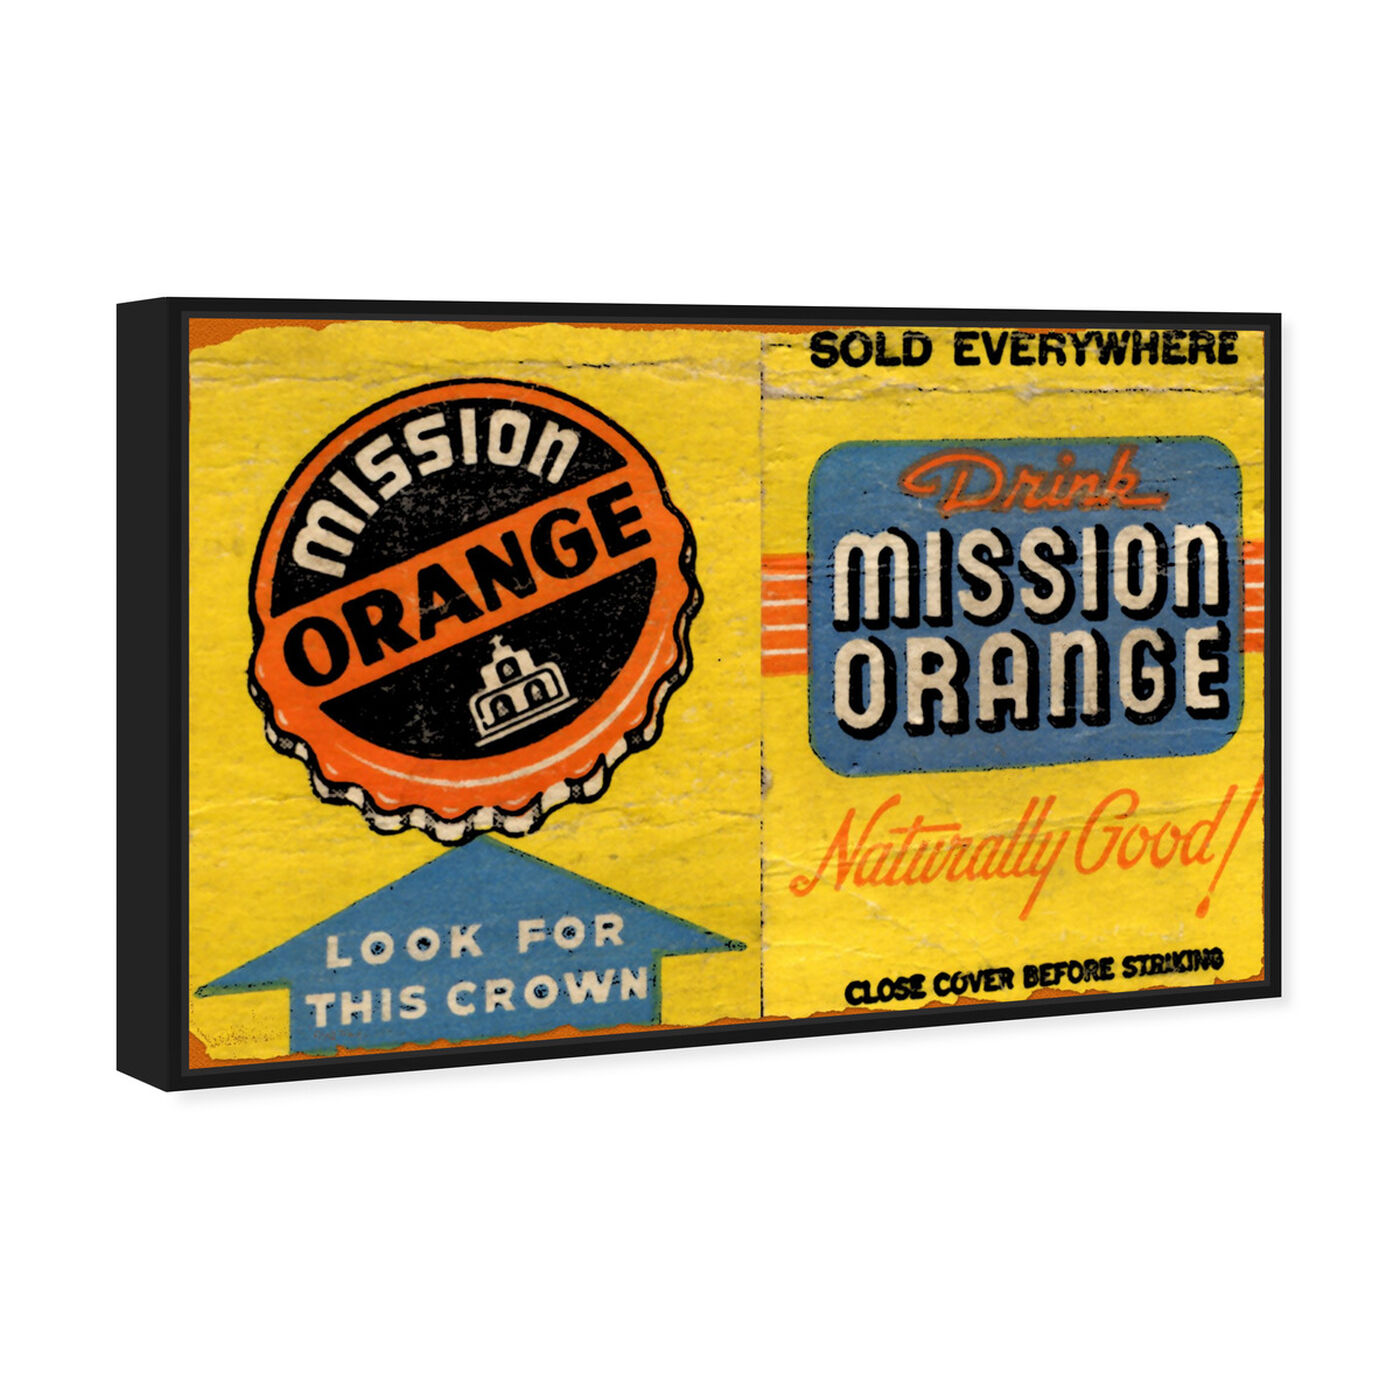 Angled view of Mission Orange featuring advertising and posters art.